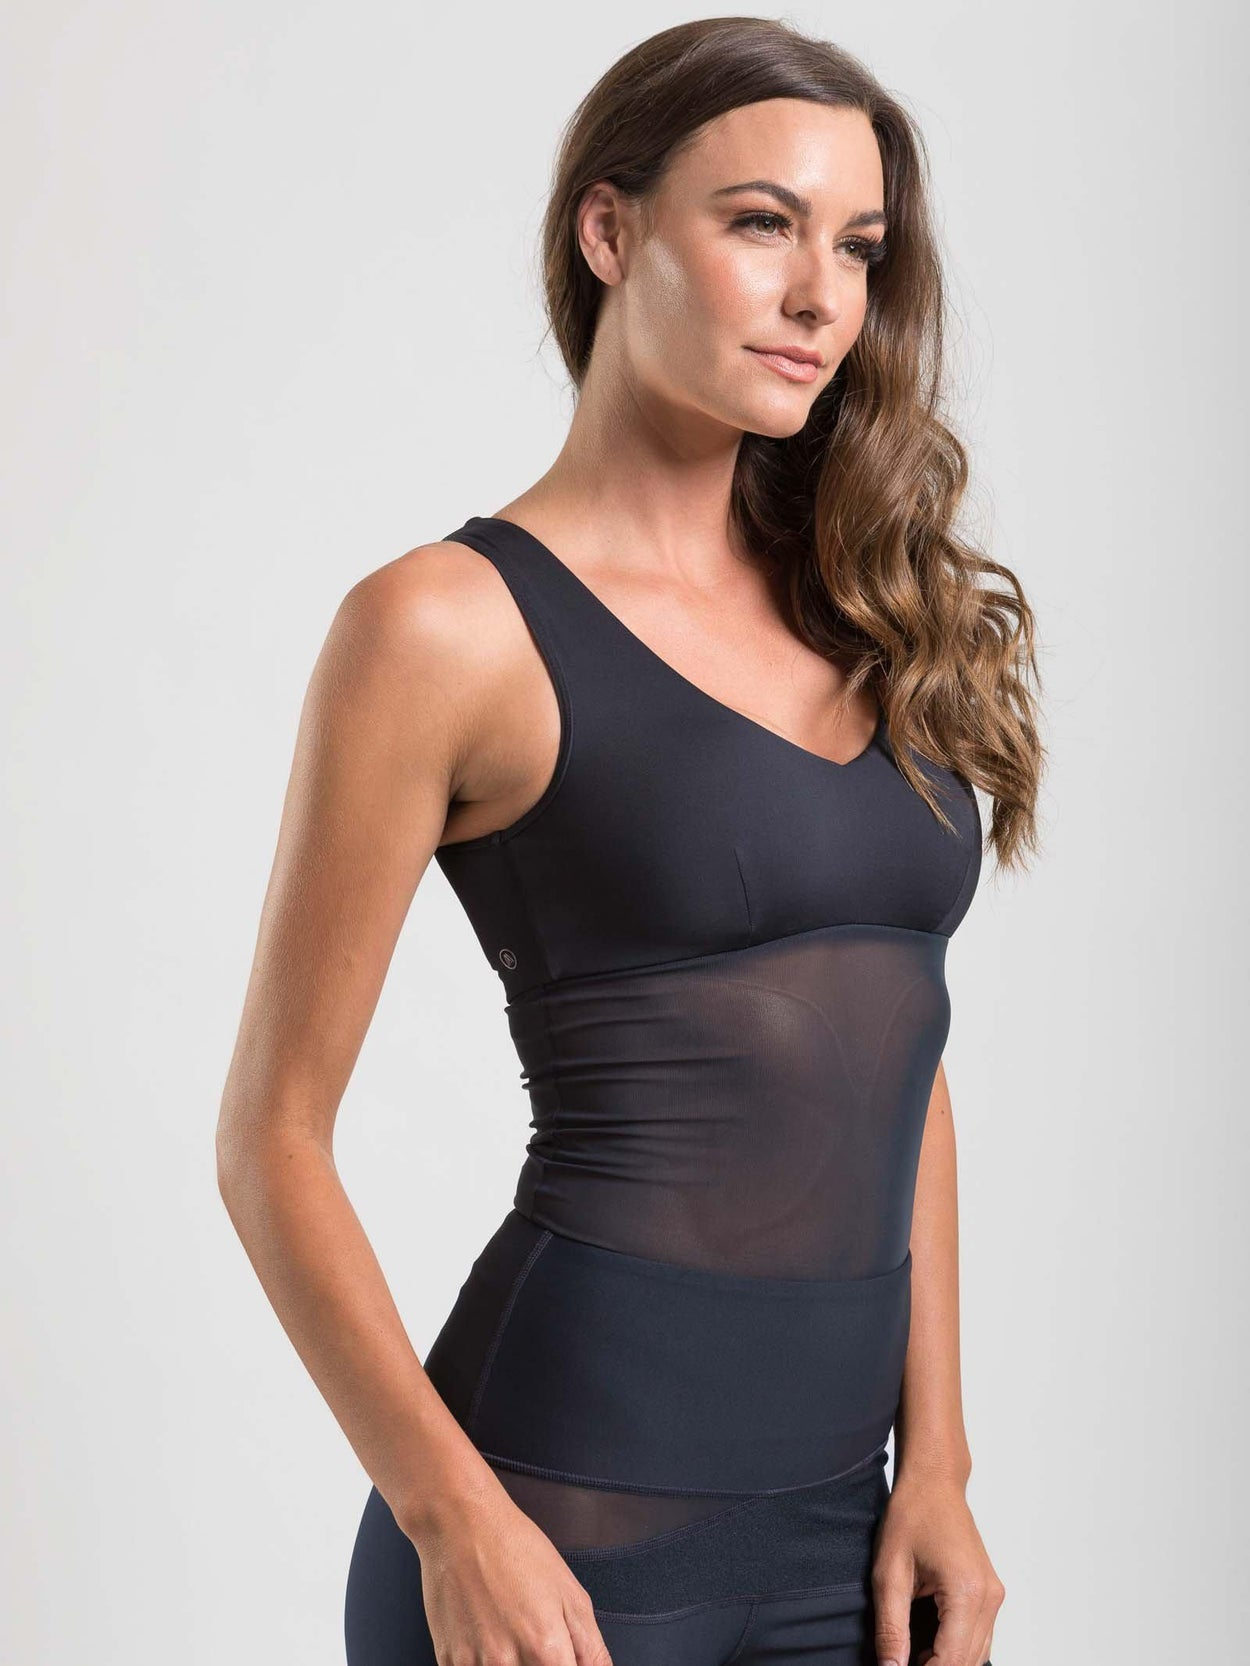 Workout Tanks and activewear for women